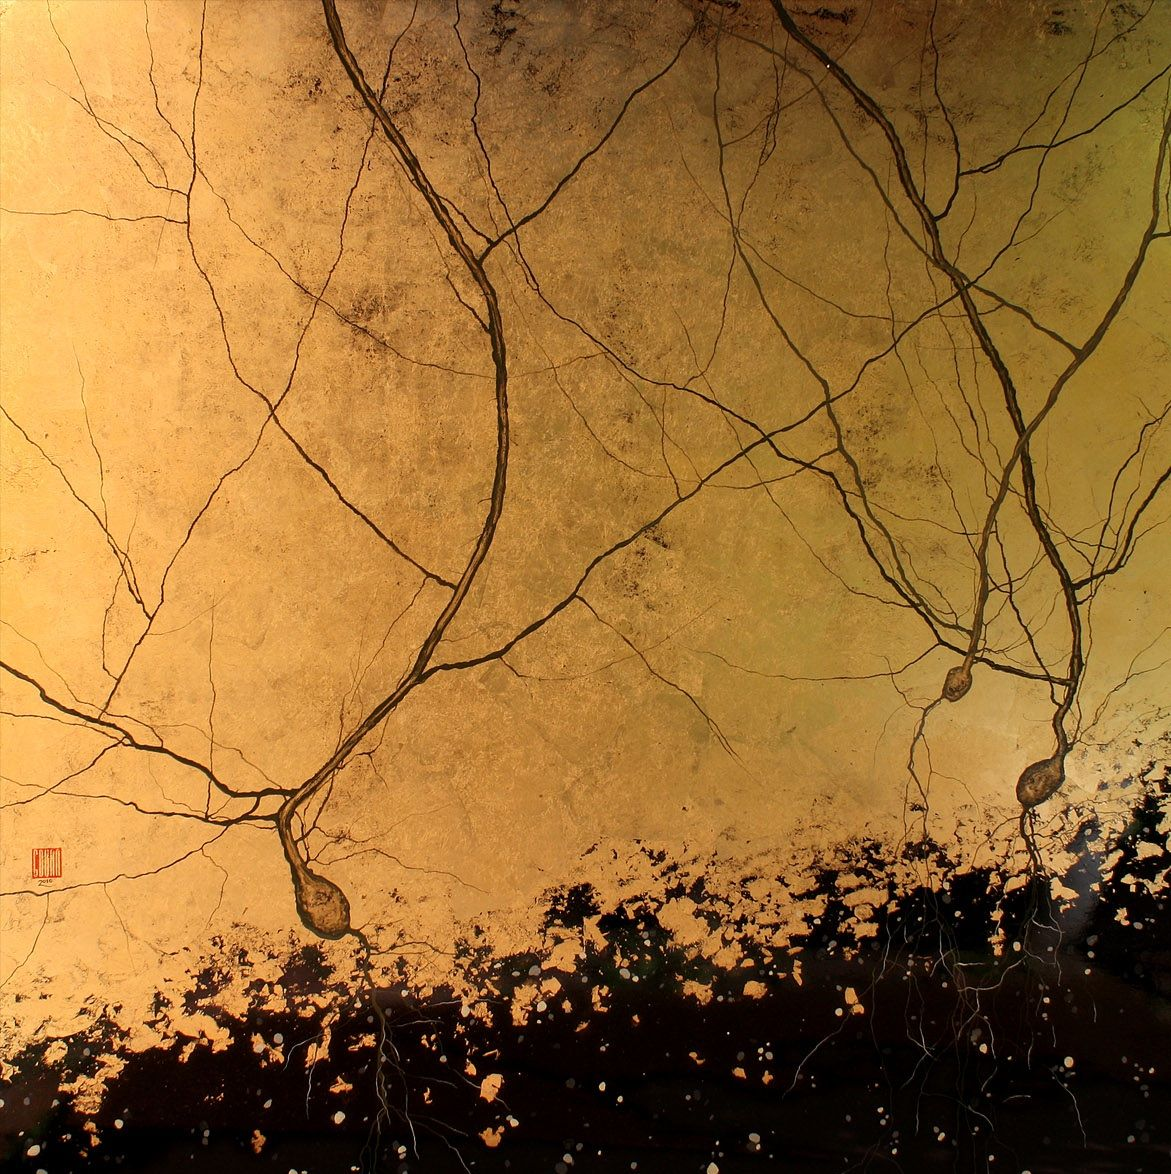 neuron art! Greg Dunn - Black and Gold Purkinjes, 2010